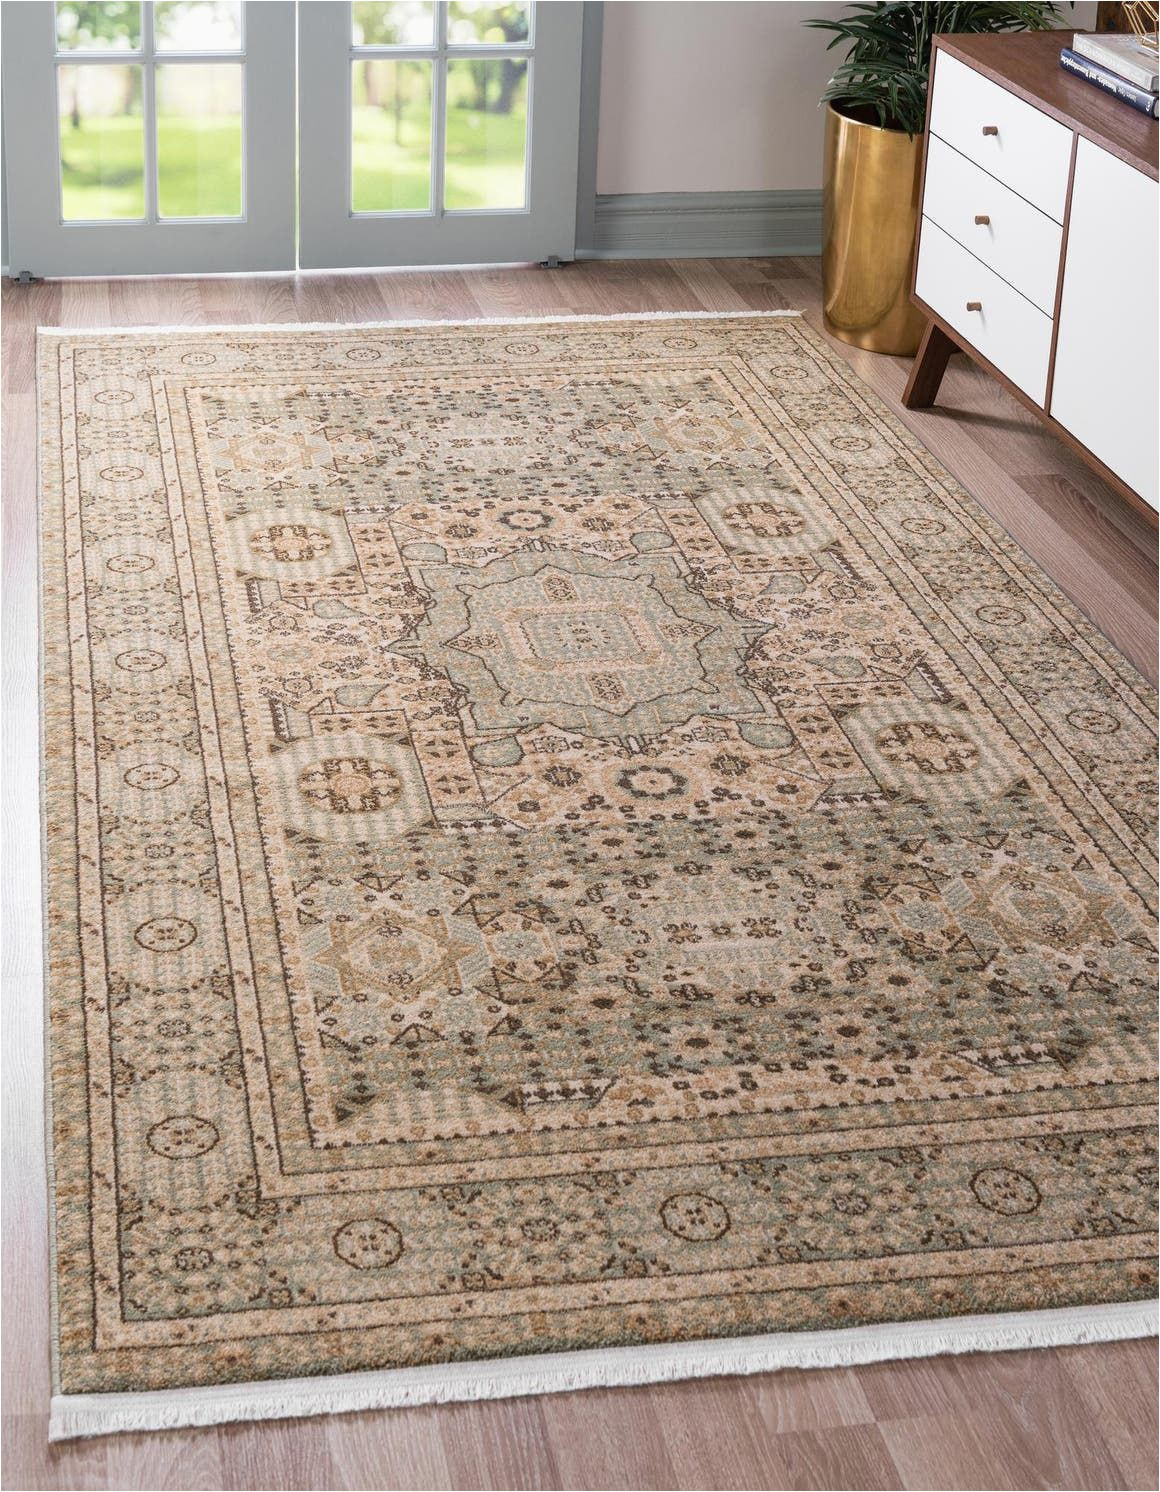 Bed Bath and Beyond Rugs 9×12 Amina Light Green Vintage 9×12 area Rug In 2020